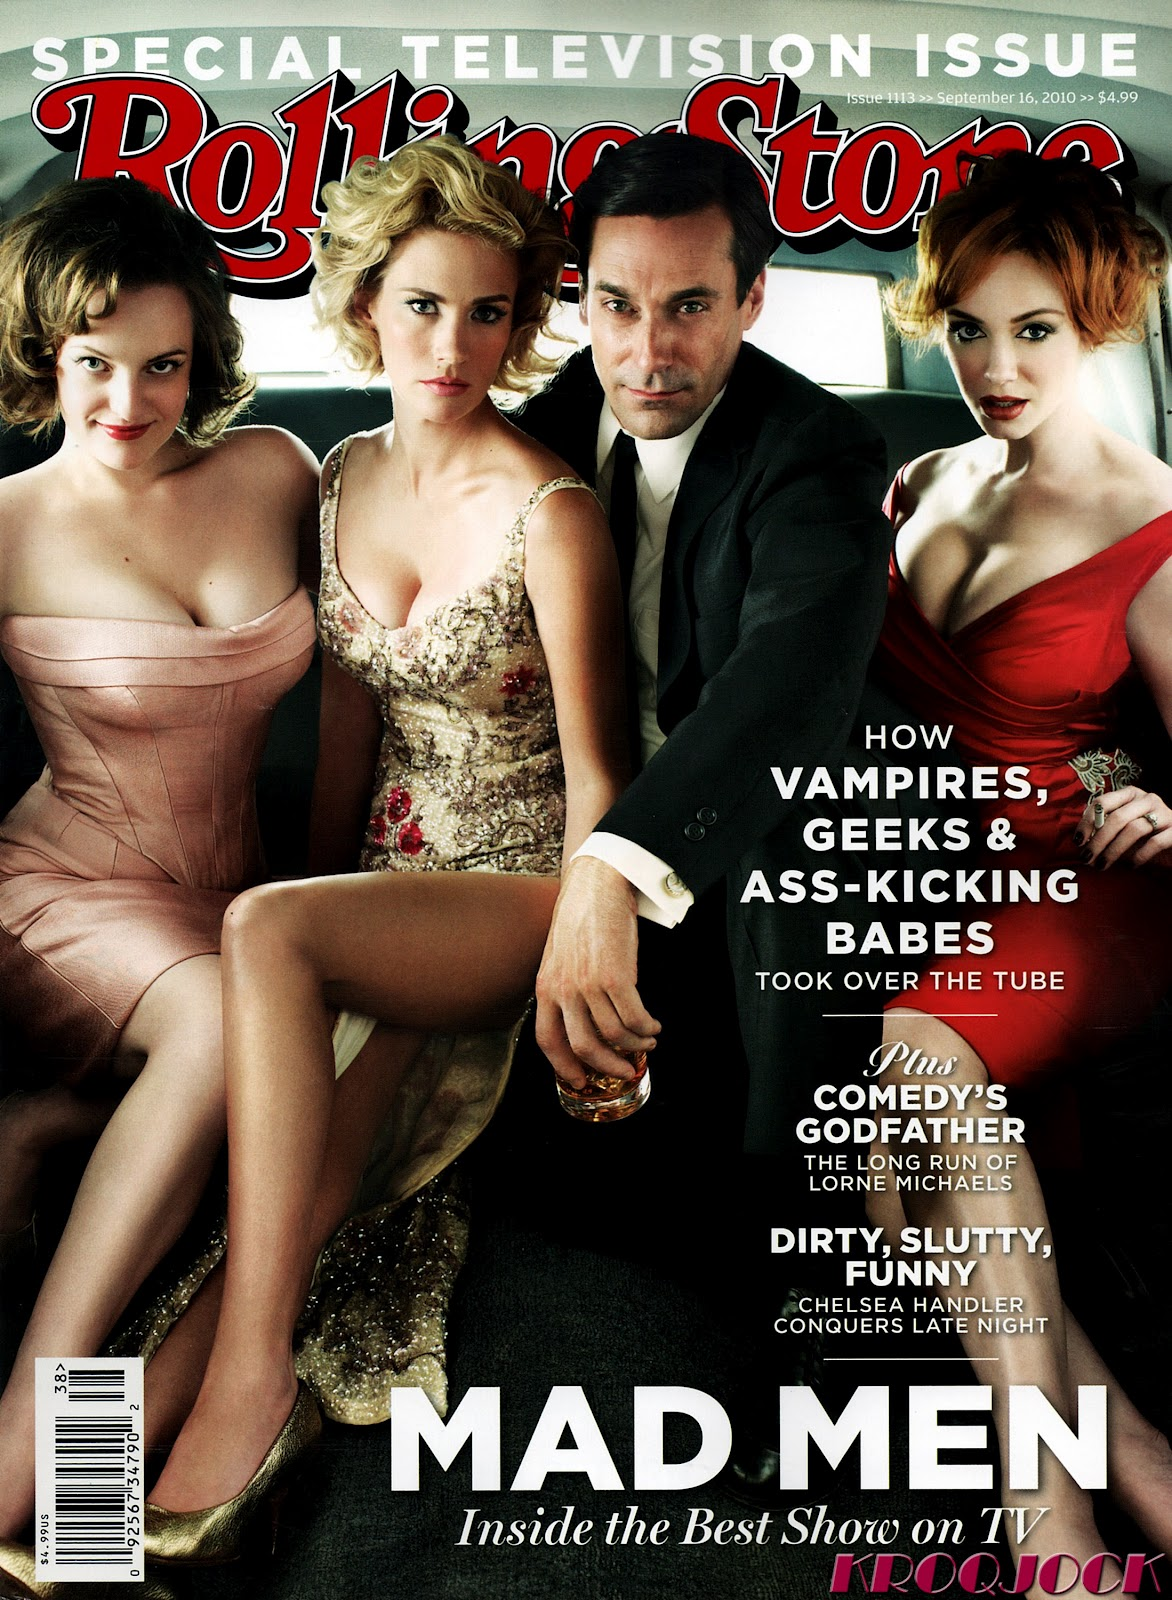 http://2.bp.blogspot.com/-l4uoSGYAqgI/T2u4-ym2PjI/AAAAAAAAjoQ/aoeM6zPVI4E/s1600/Celebutopia_NET.Christina_Hendricks_January_Jones_Elizabeth_Moss.Rolling_Stone_Issue_1113.Scanned_by_KROQJOCK.HQ_.jpeg